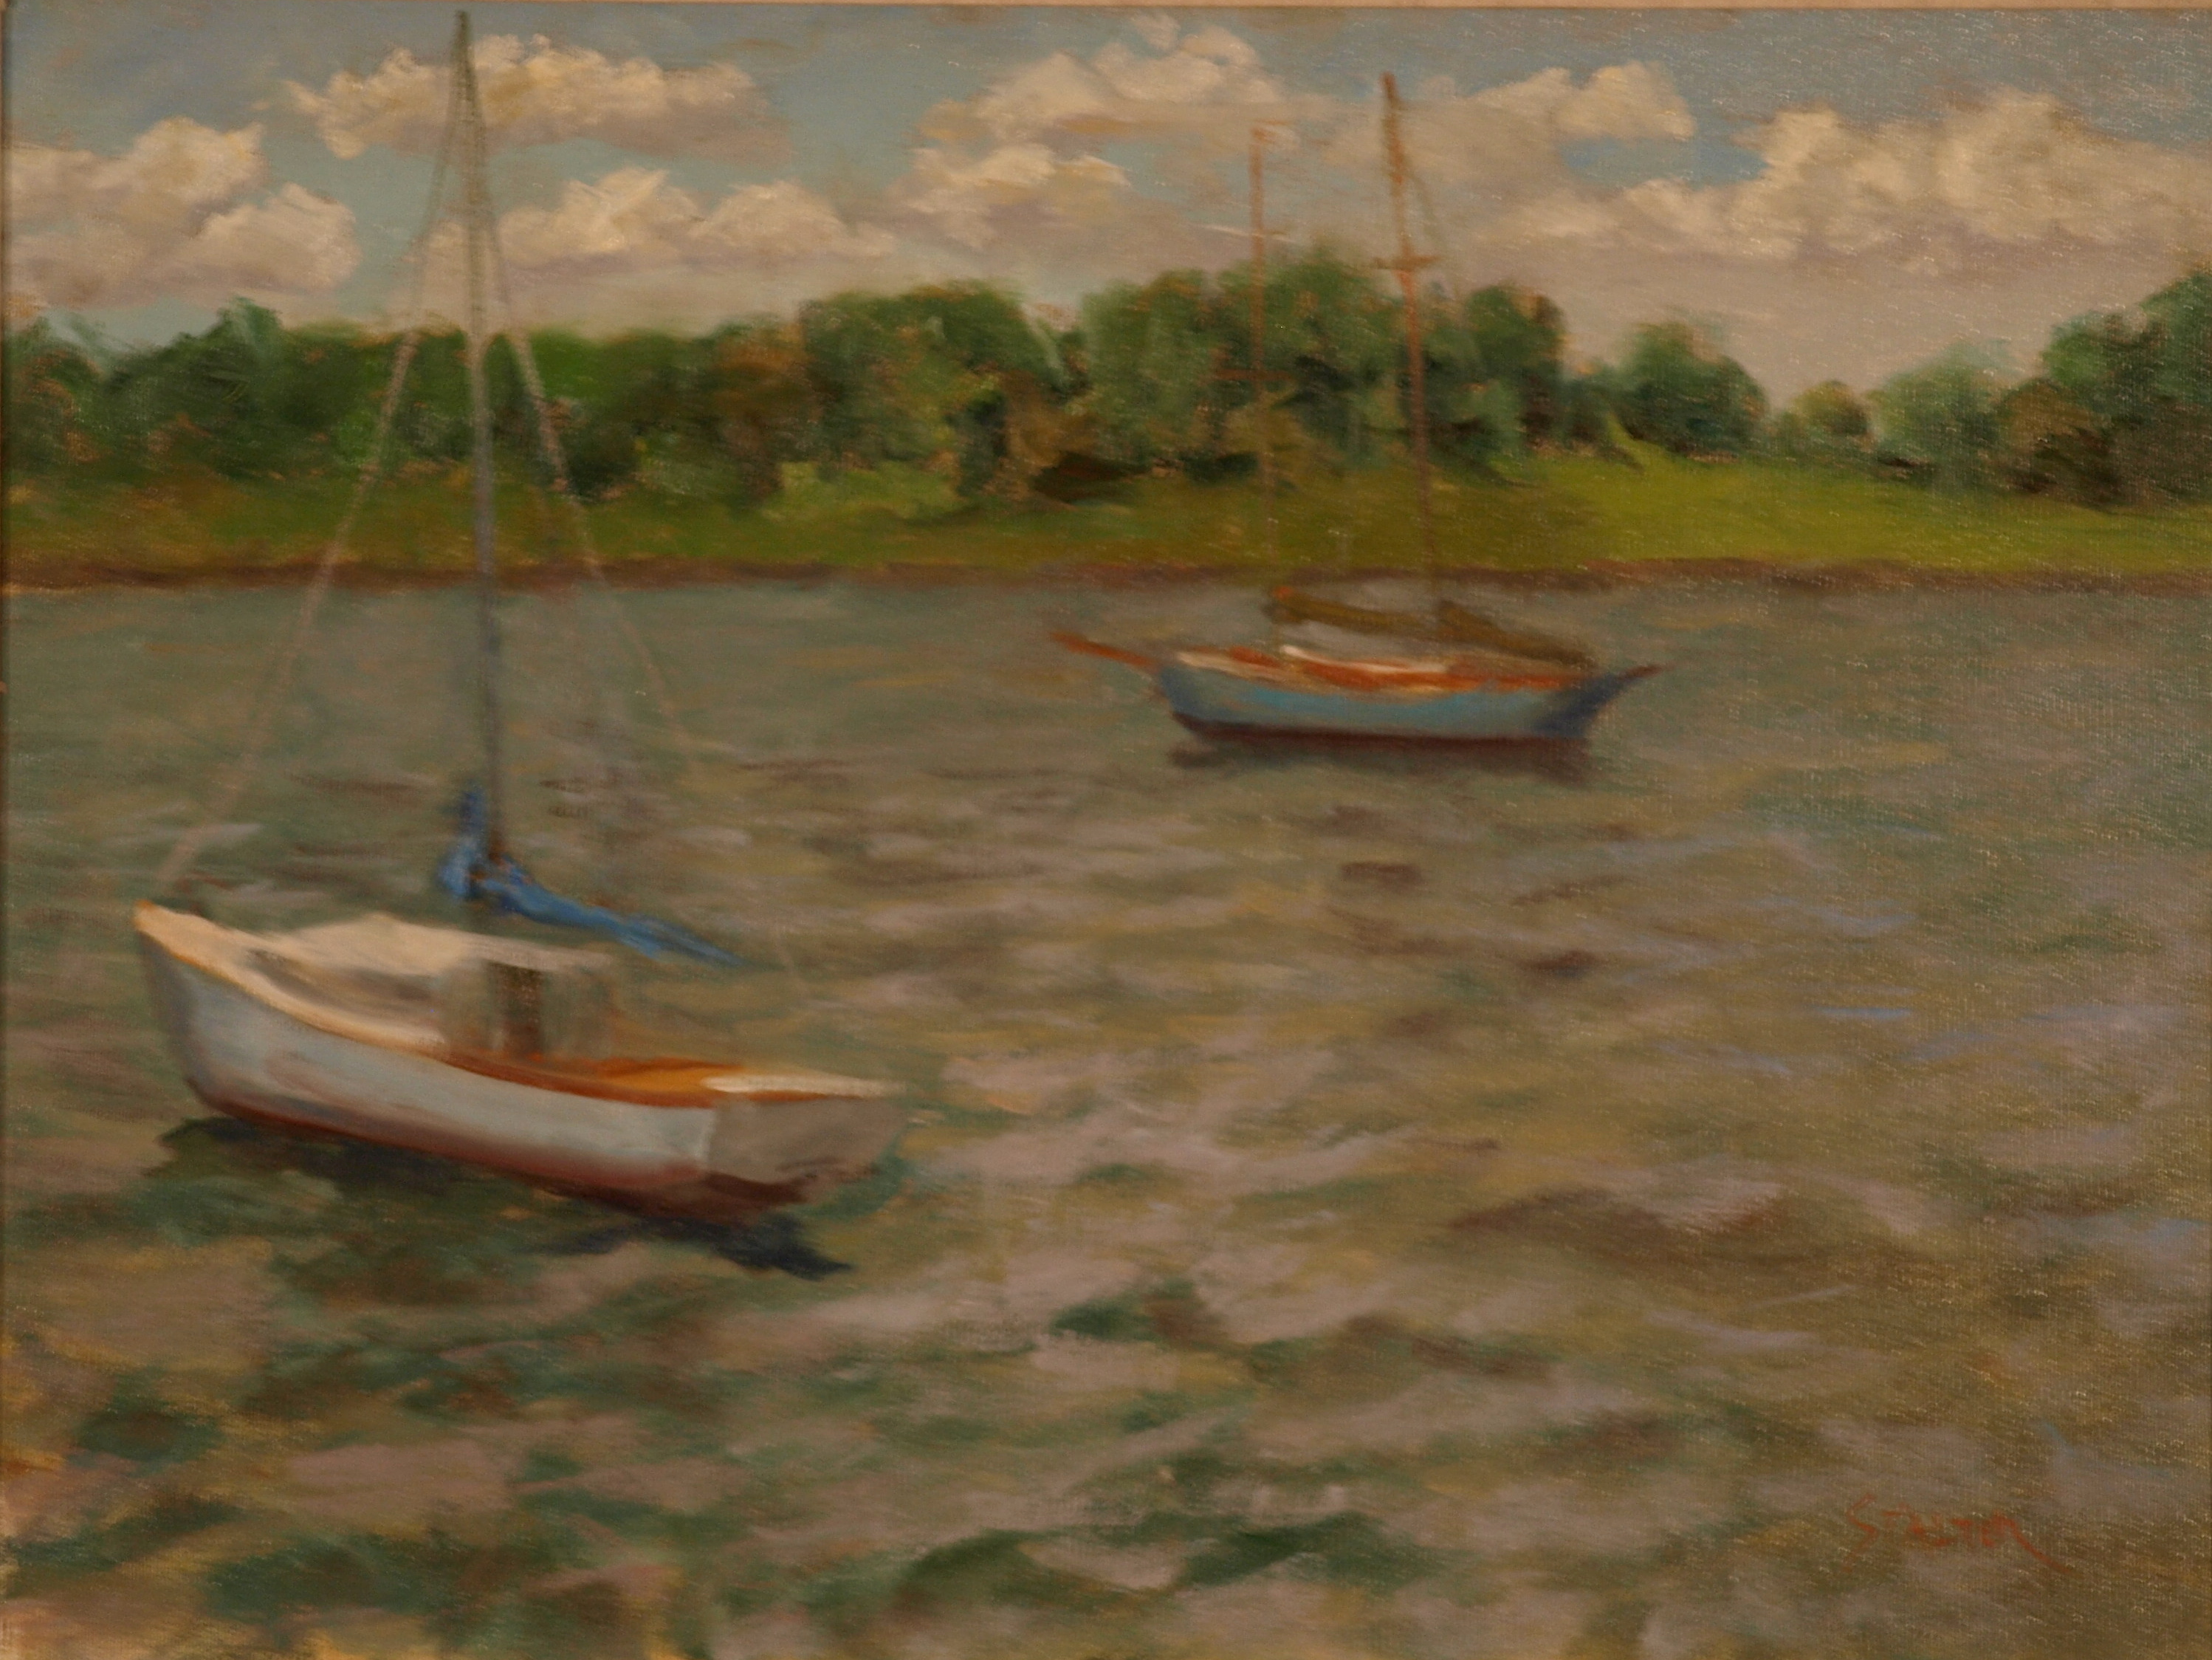 Choppy Water off Stonington, Oil on Canvas, 18 x 24 Inches, by Richard Stalter, $650